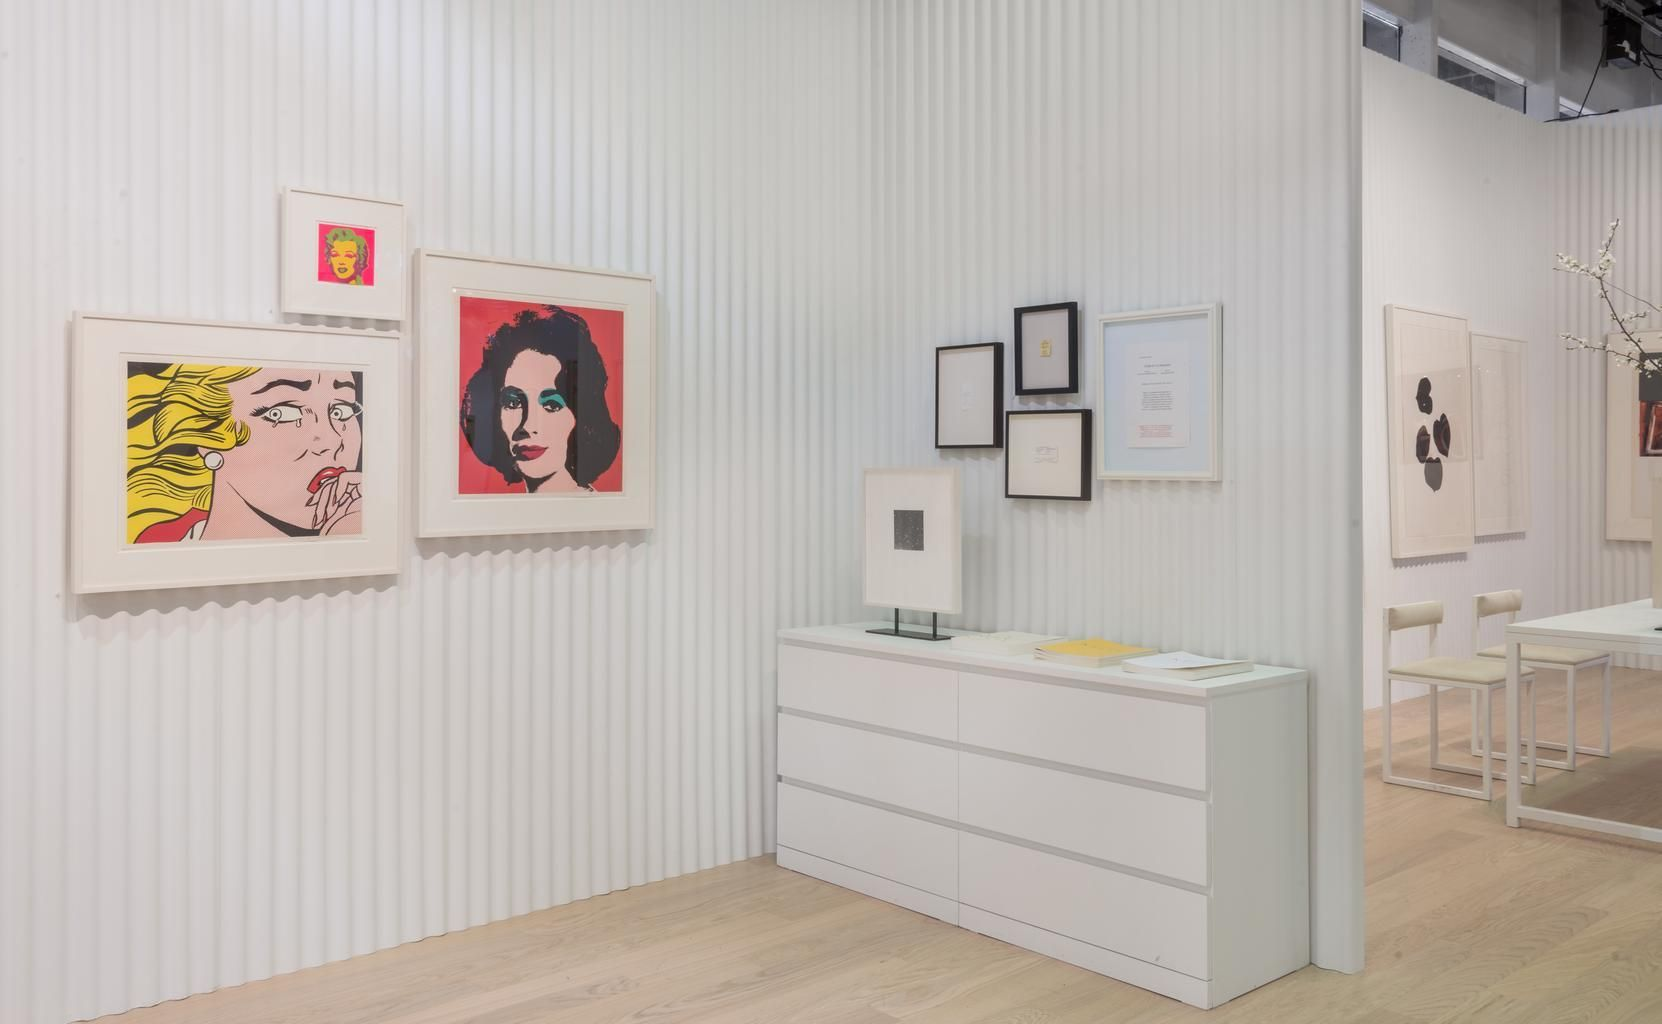 The Armory Show 2017 at Susan Sheehan Gallery